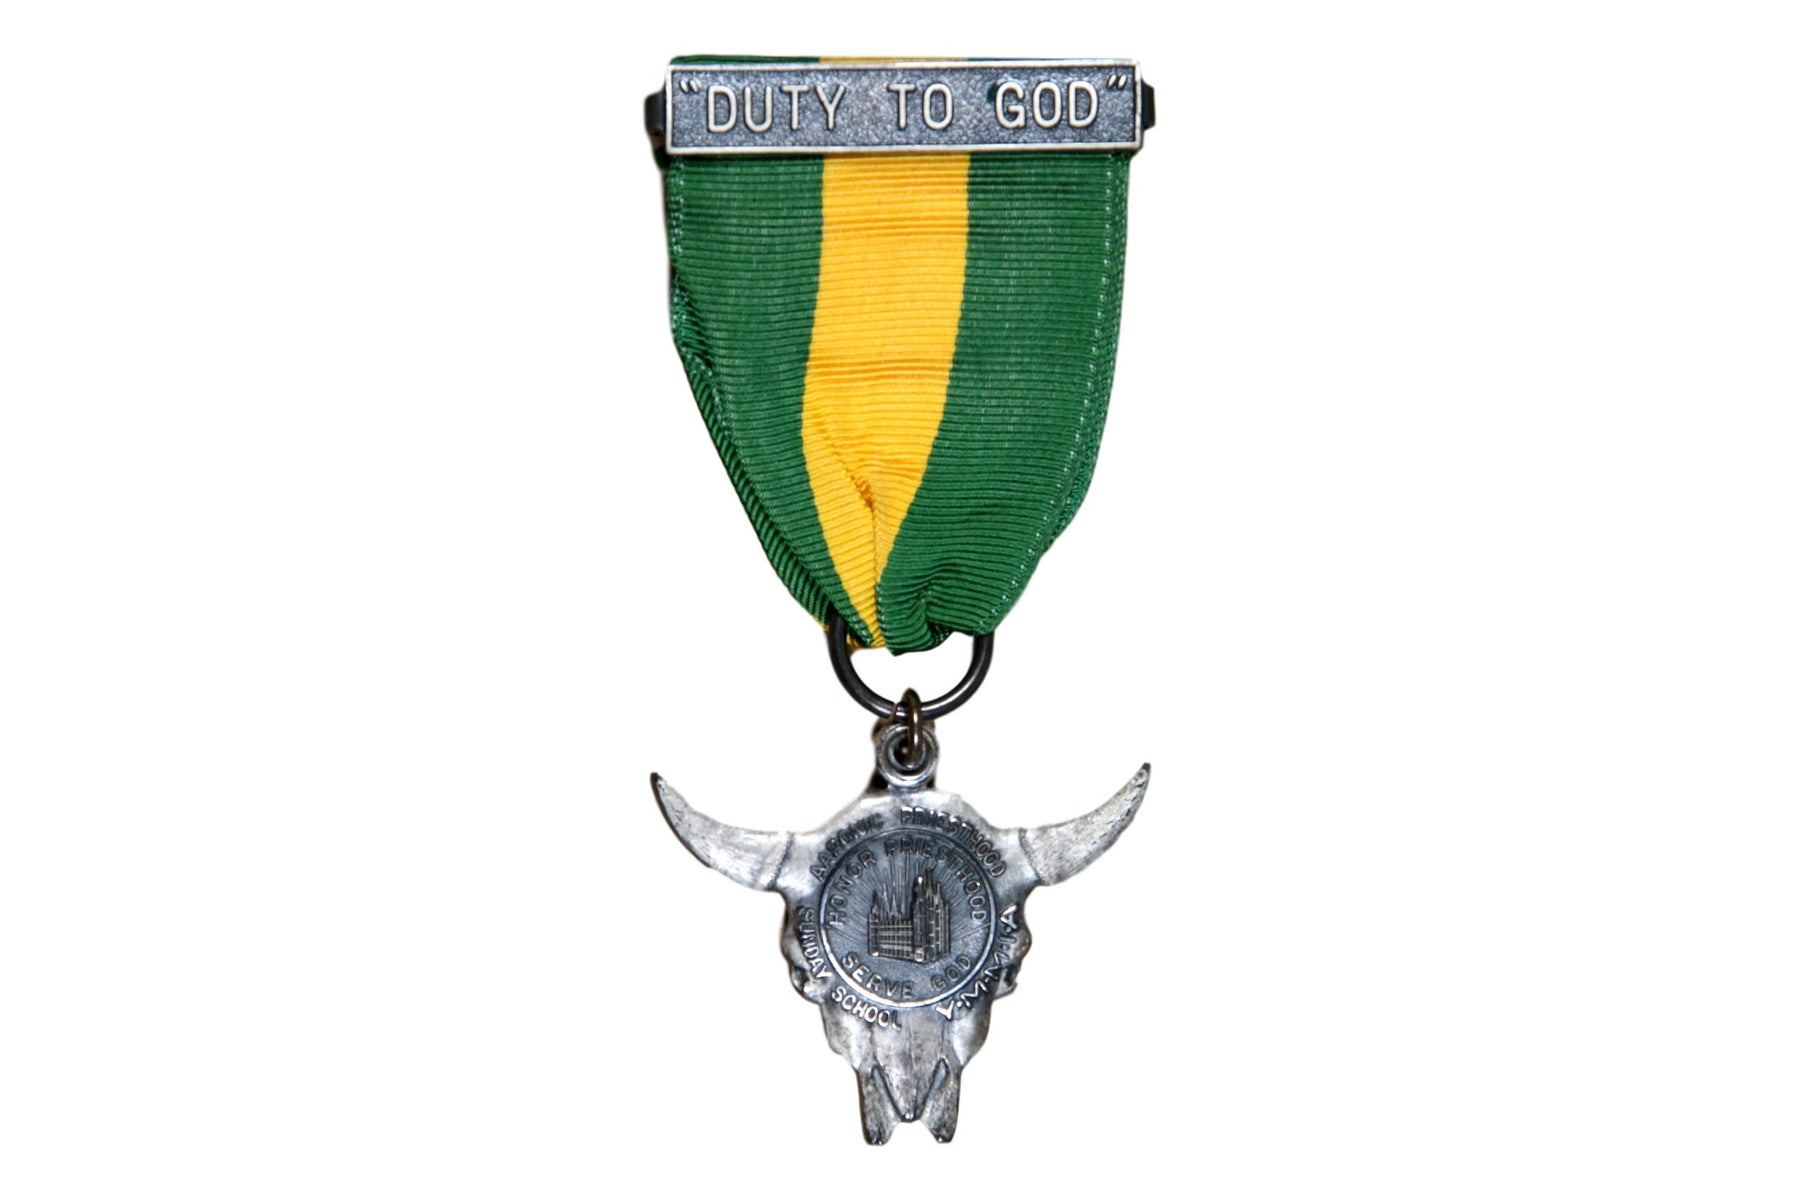 Duty to God Award Medal LDS Type 1A